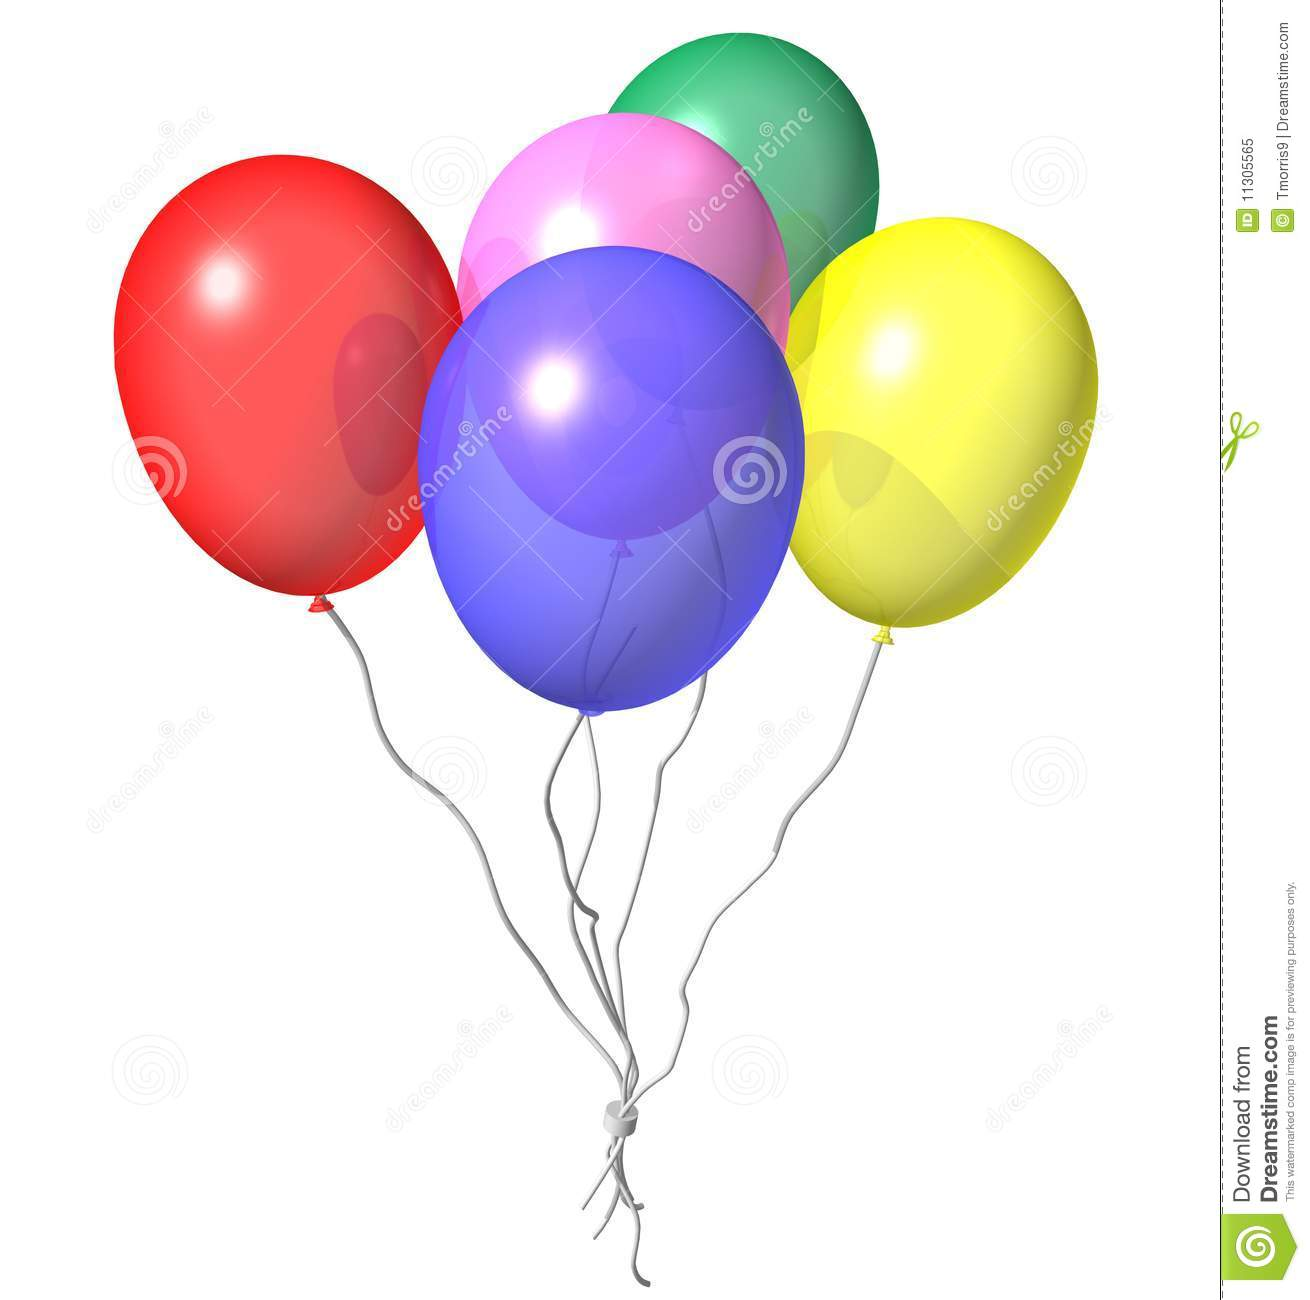 Party Balloons Royalty Free Stock Photo - Image: 11305565